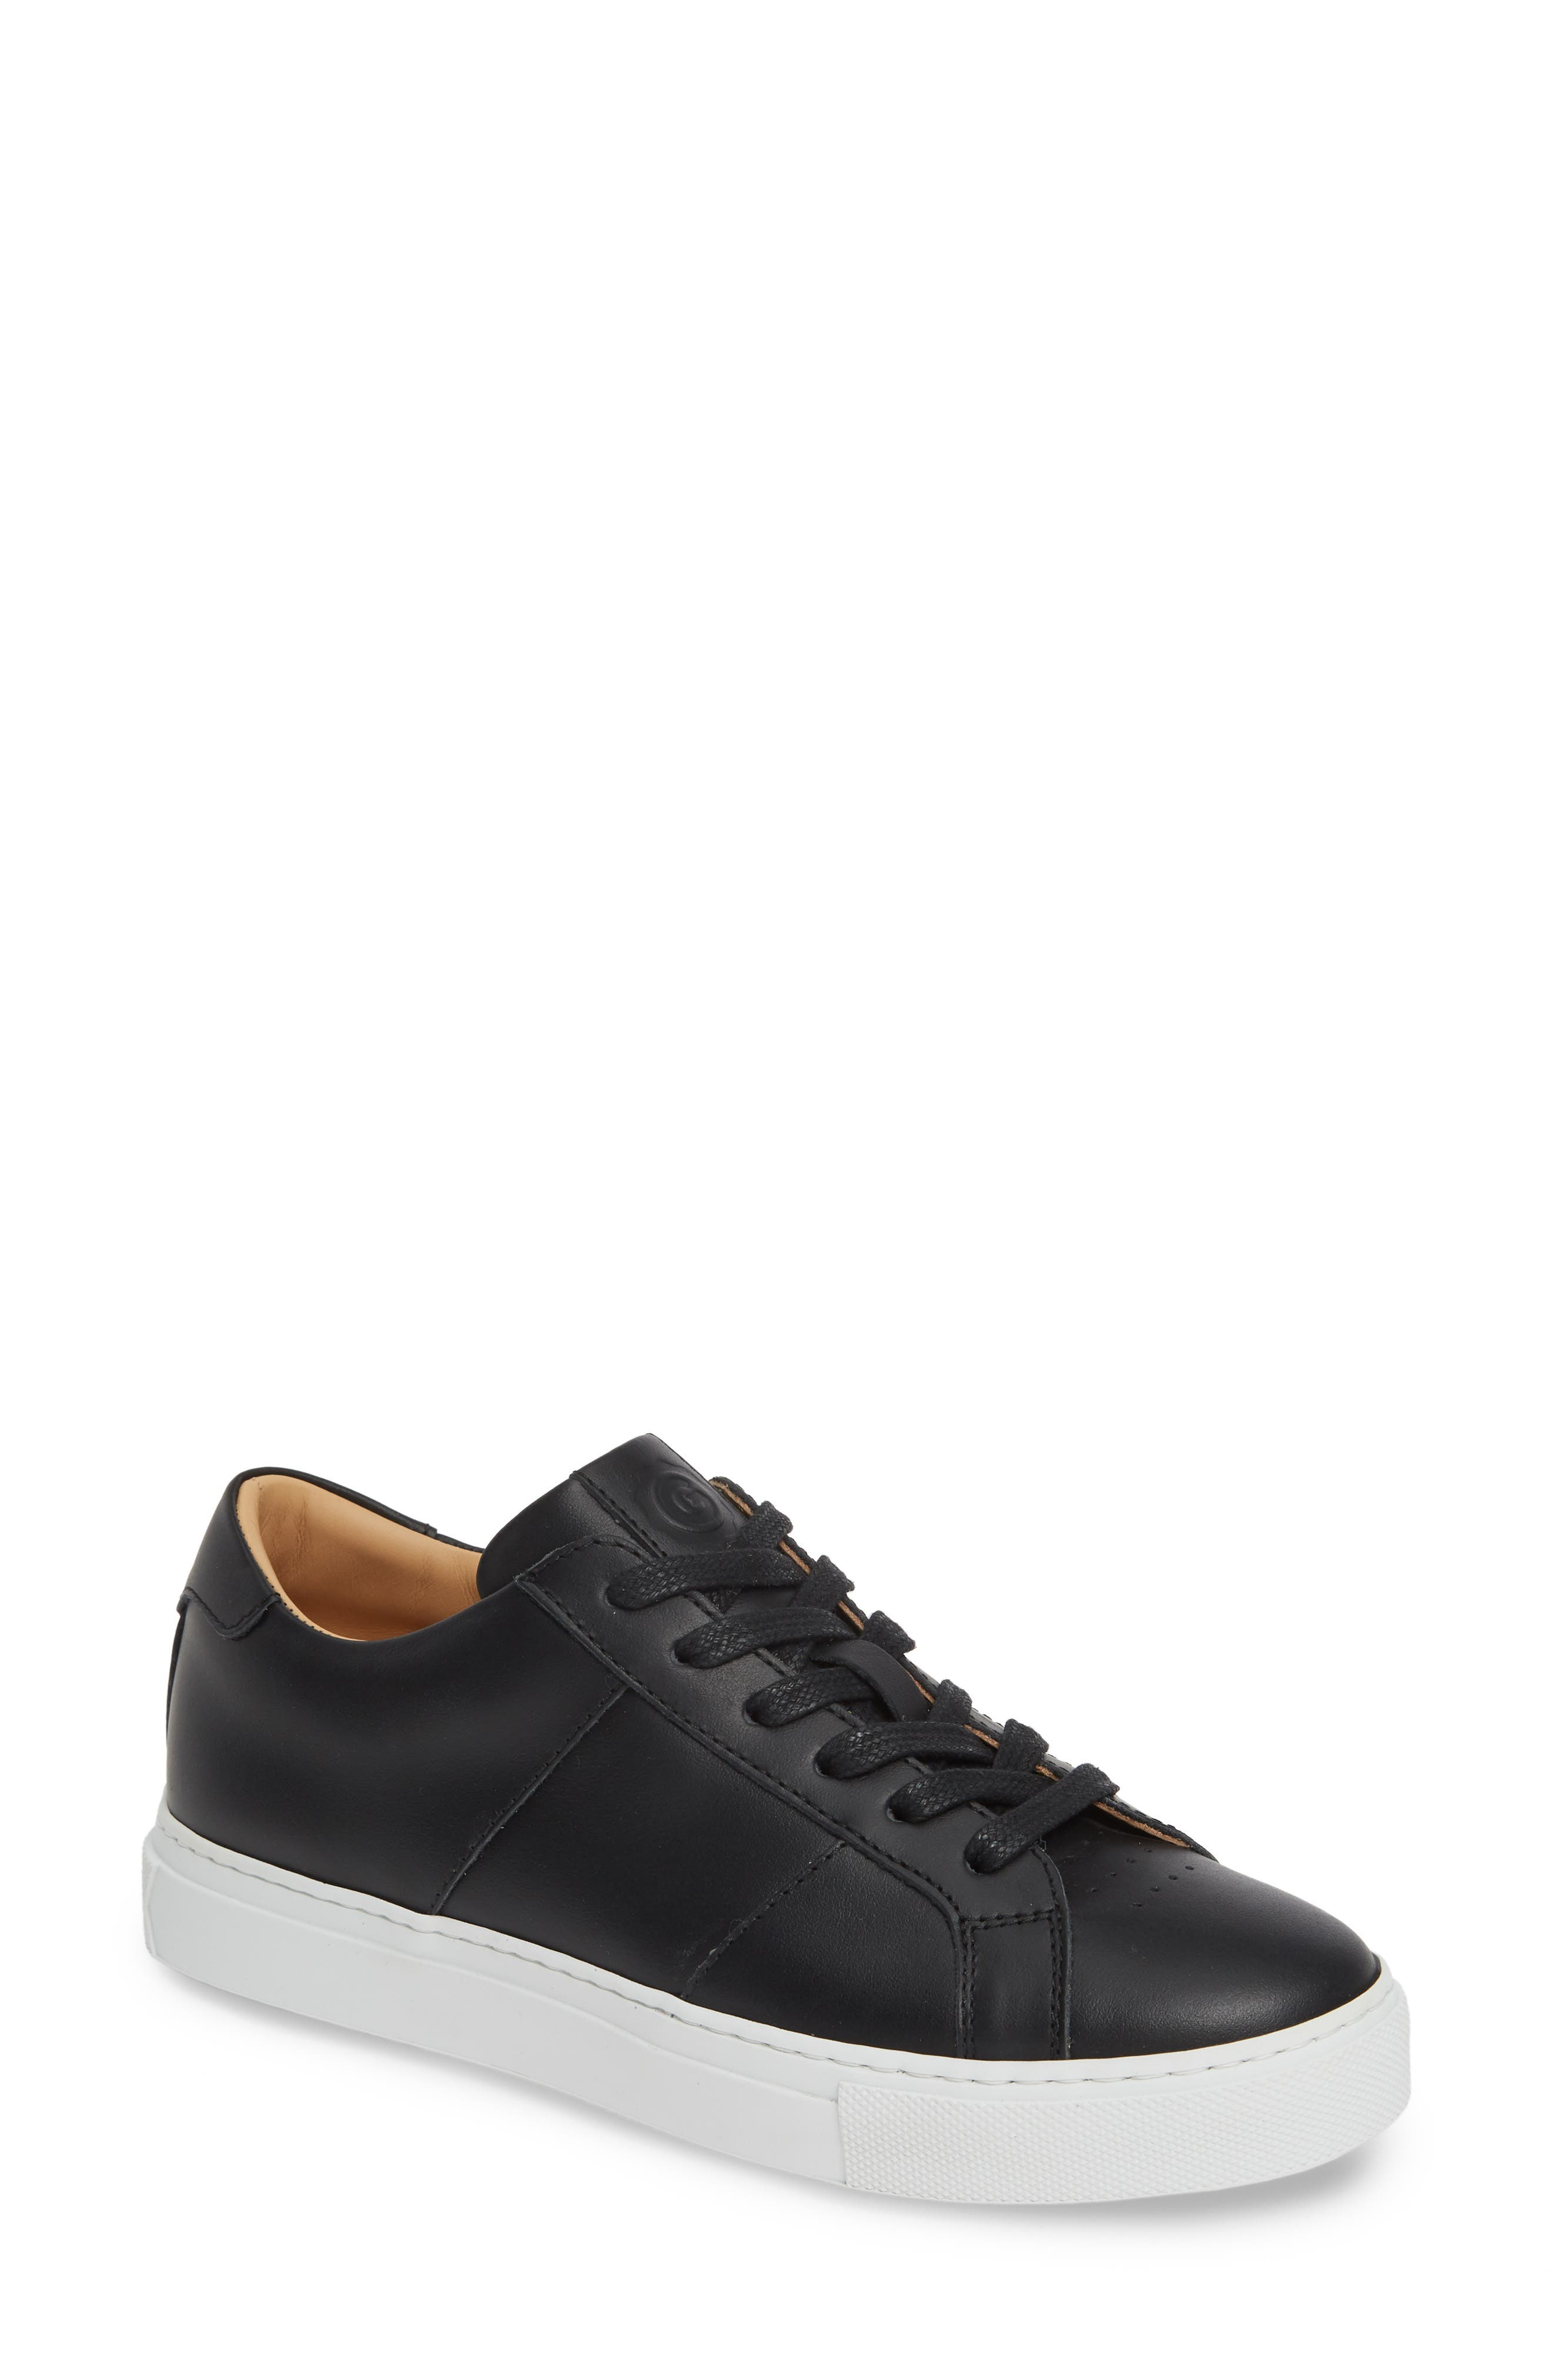 GREATS, Royale Low Top Sneaker, Main thumbnail 1, color, BLACK LEATHER